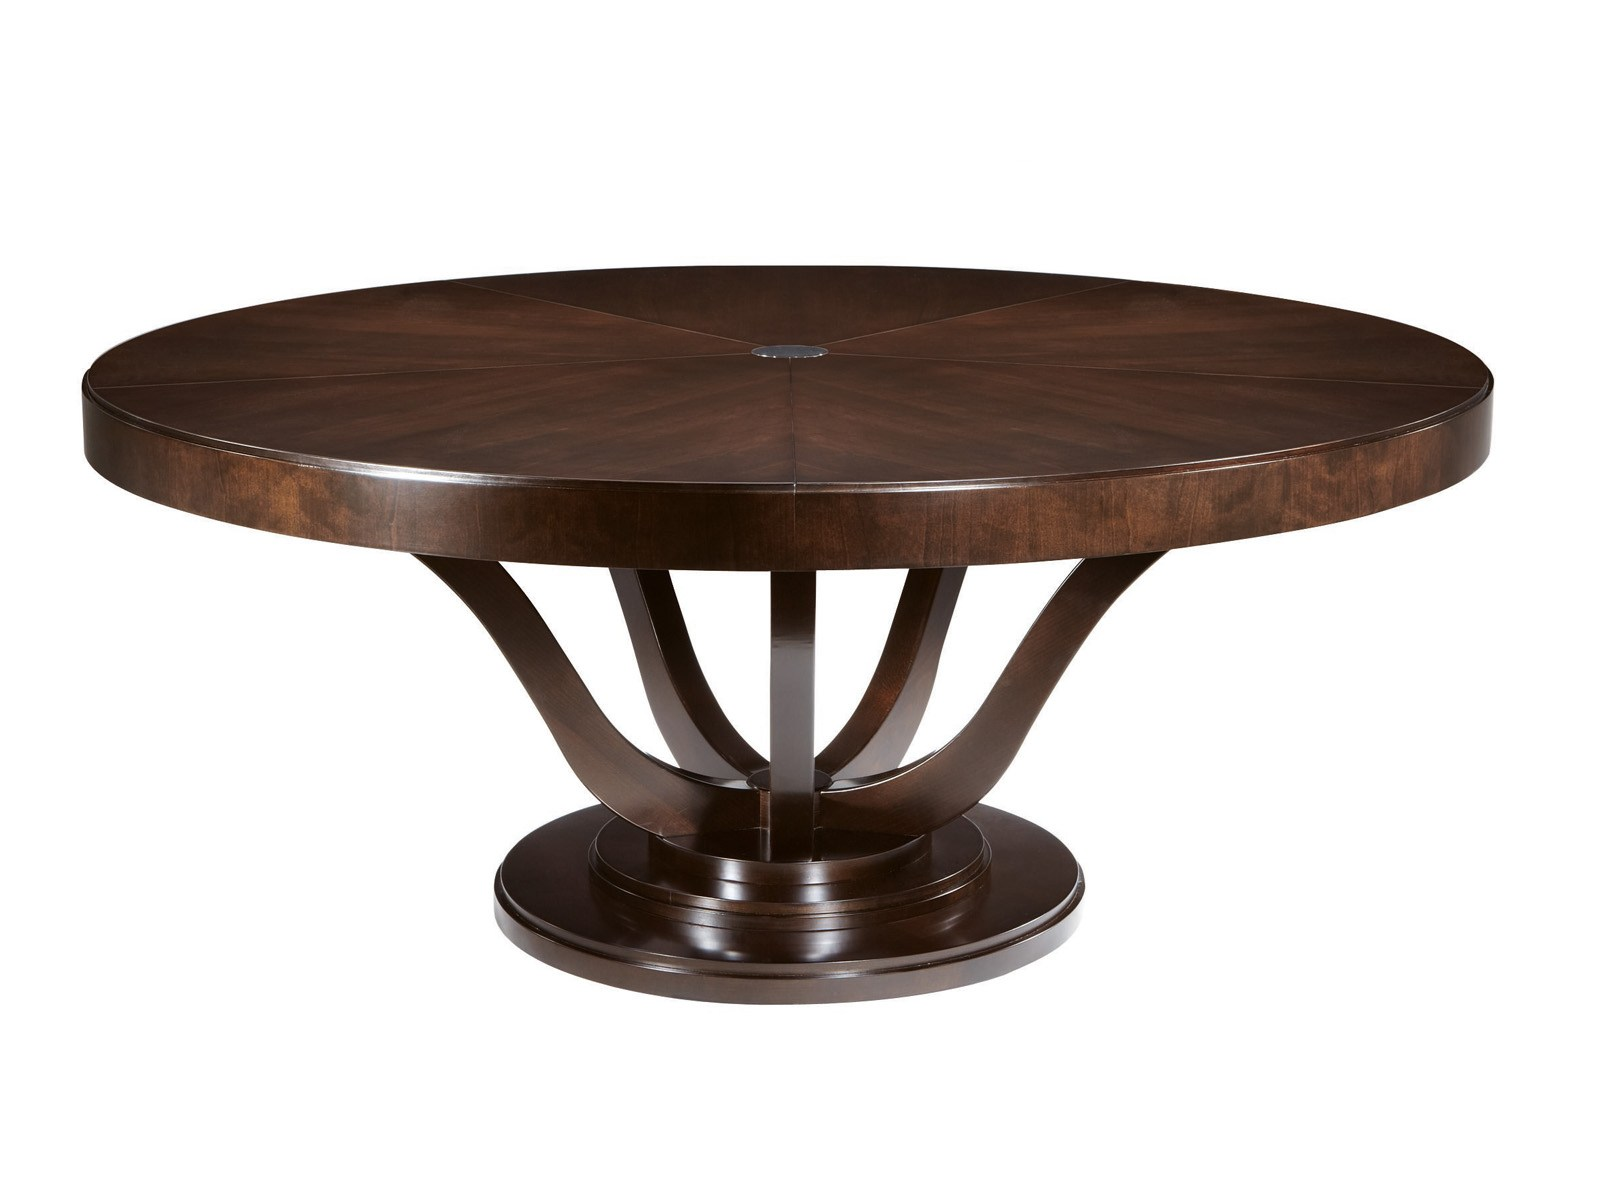 Victoria table by selva design tiziano bistaffa for Table a manger ronde en bois